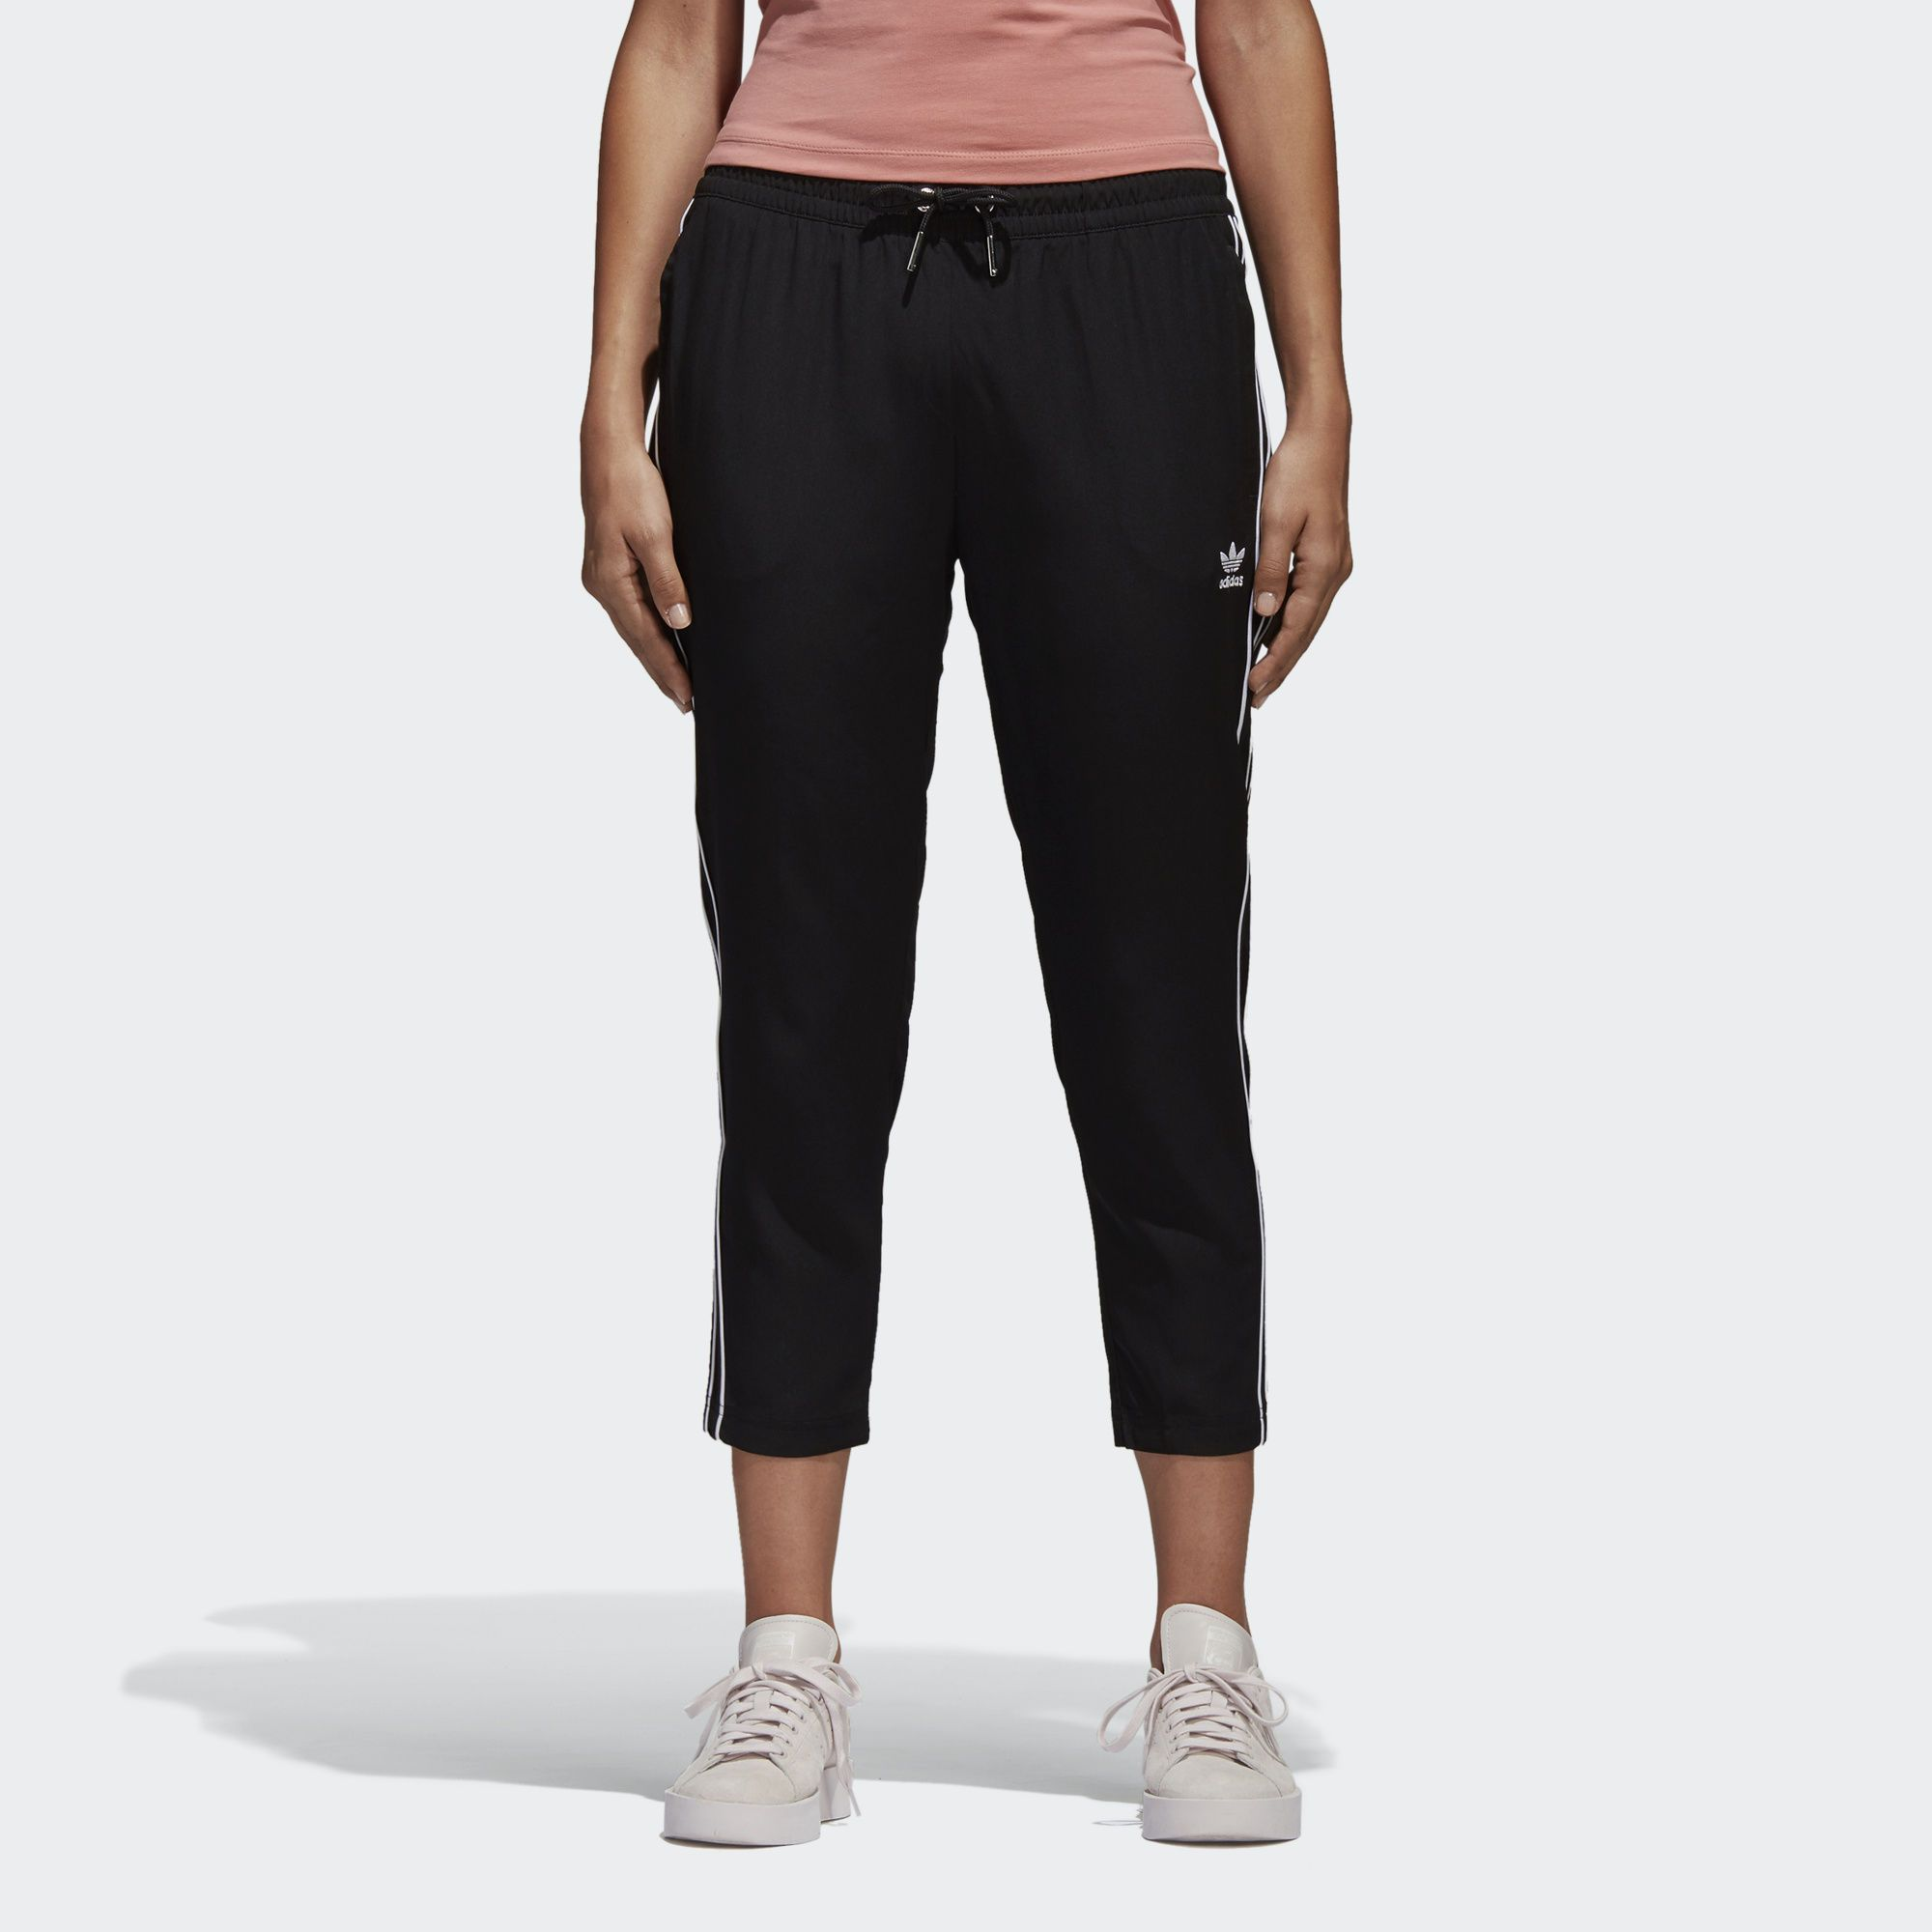 bc3dae402a Calça Cropped Styling Complements